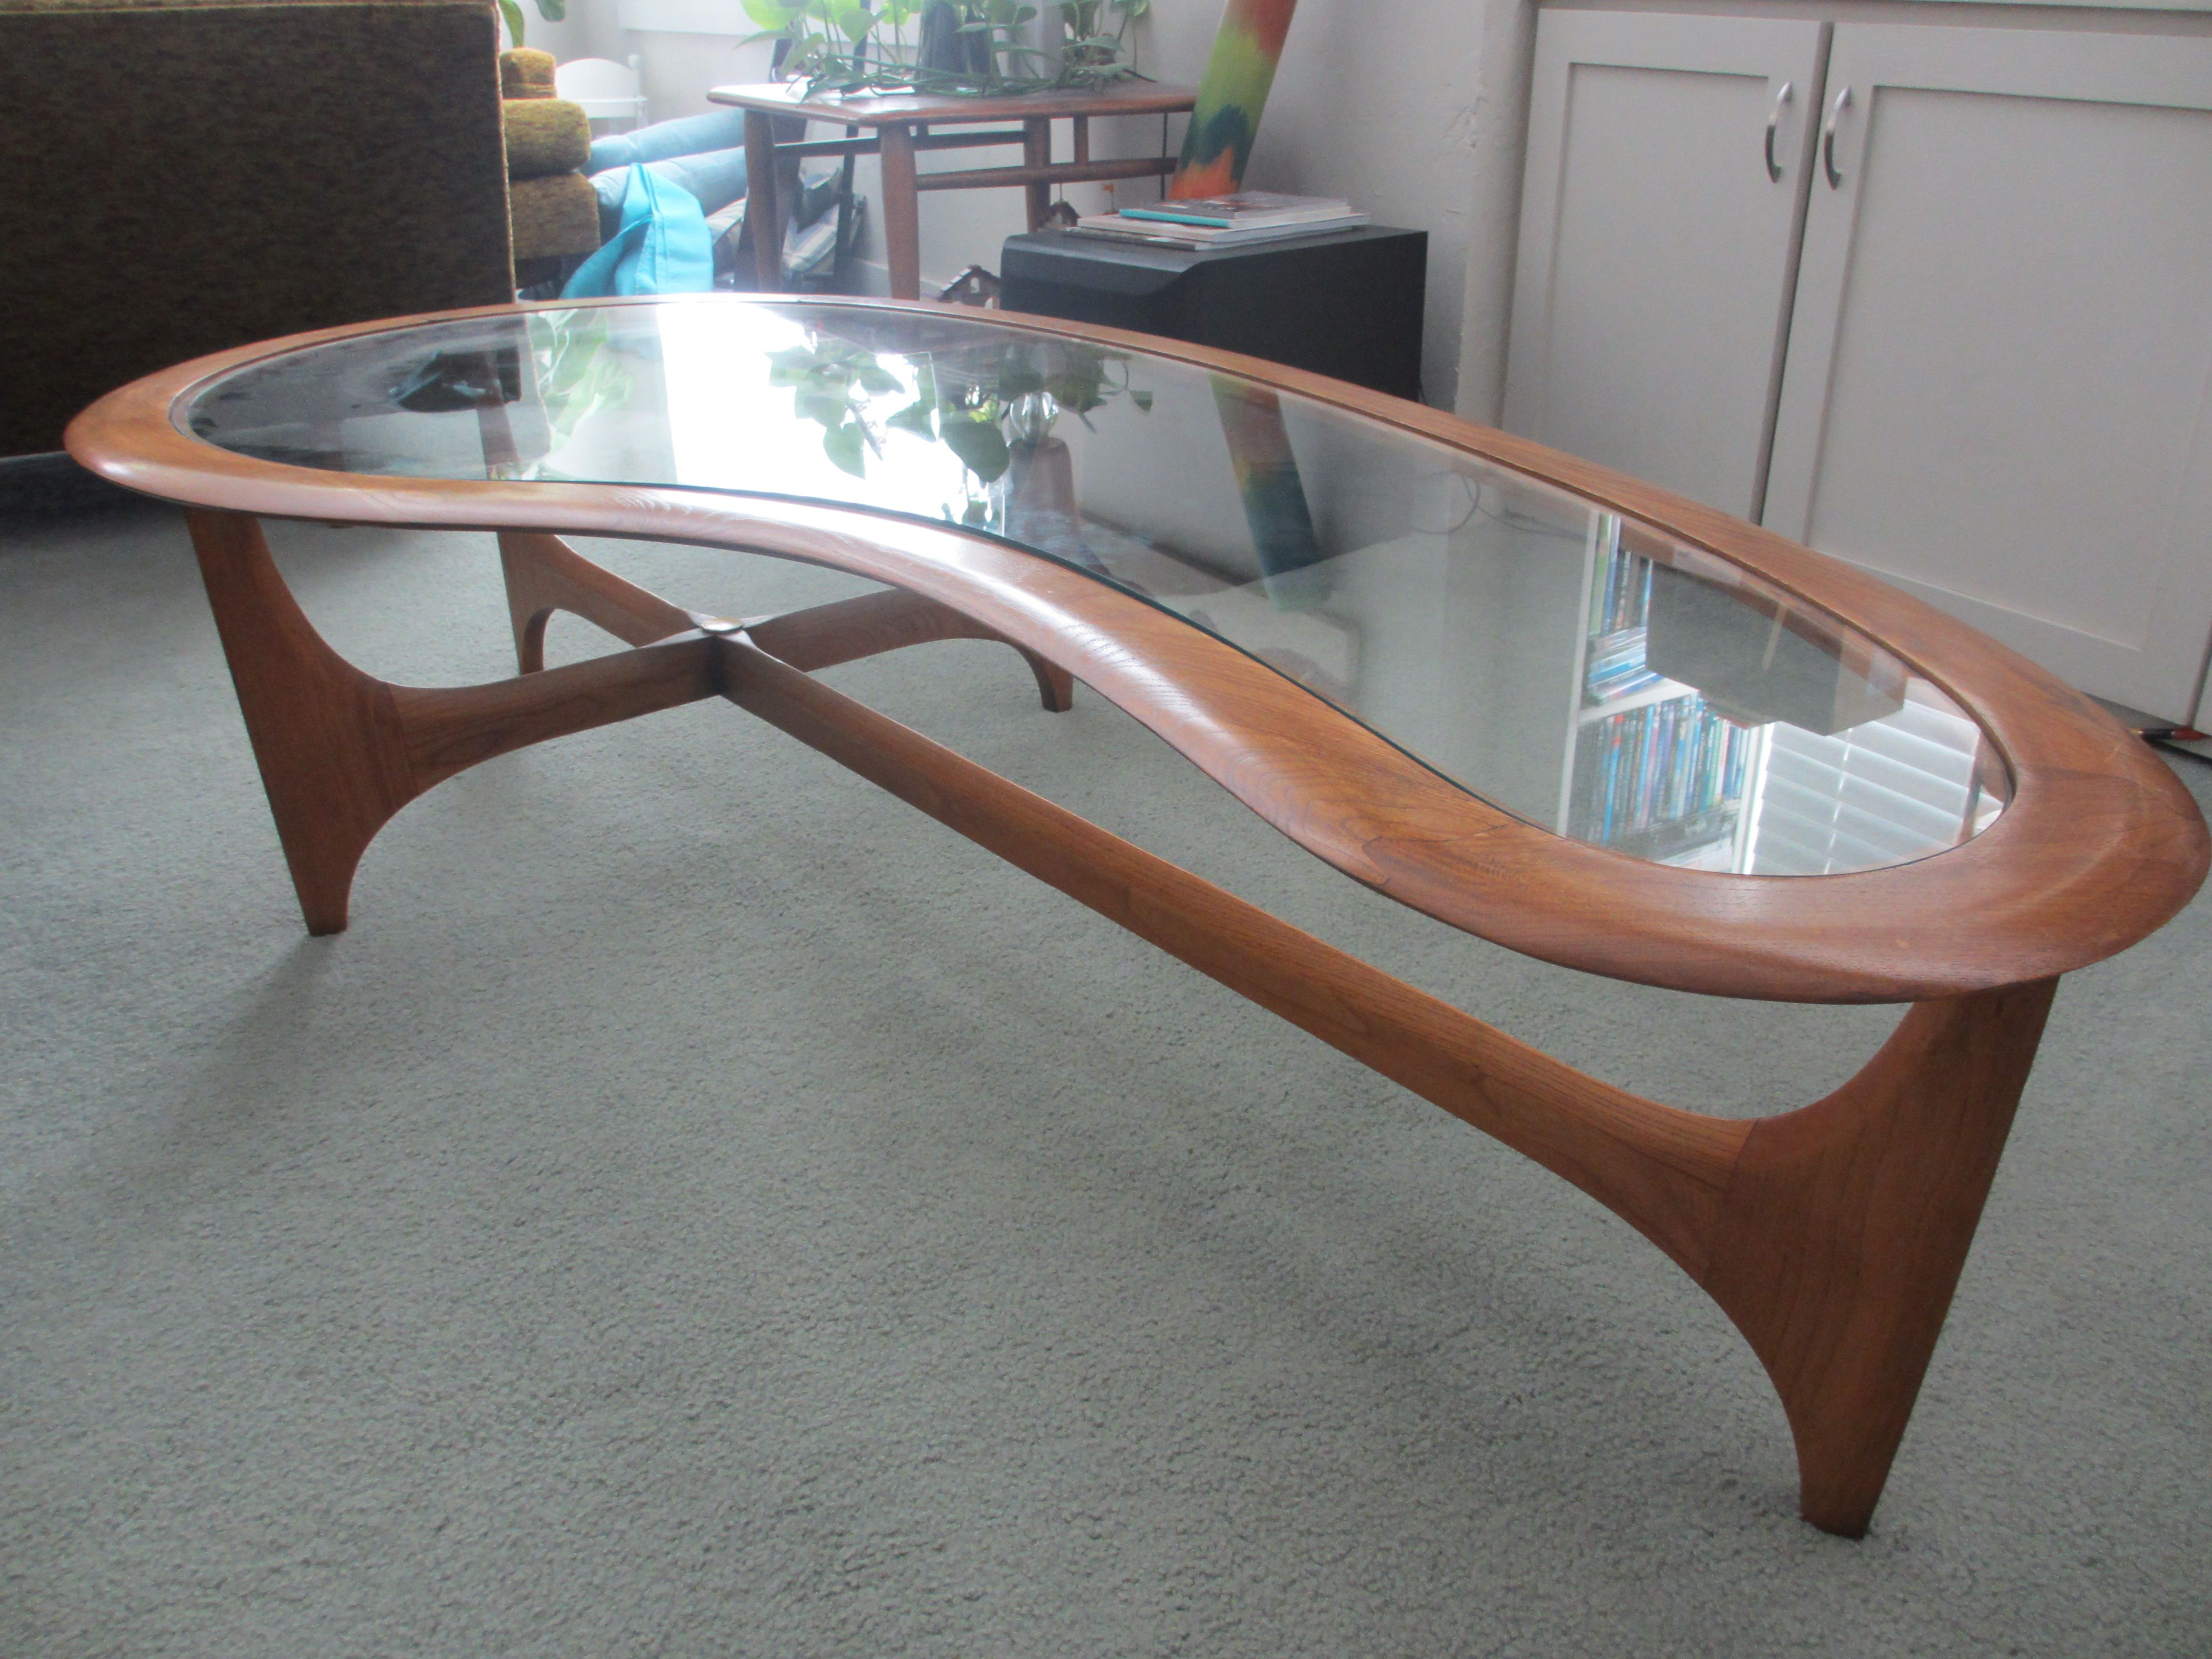 Kidney Shaped Glass Top Coffee Table Lane Kidney Shaped Glass Coffee Table Mak Mid Century